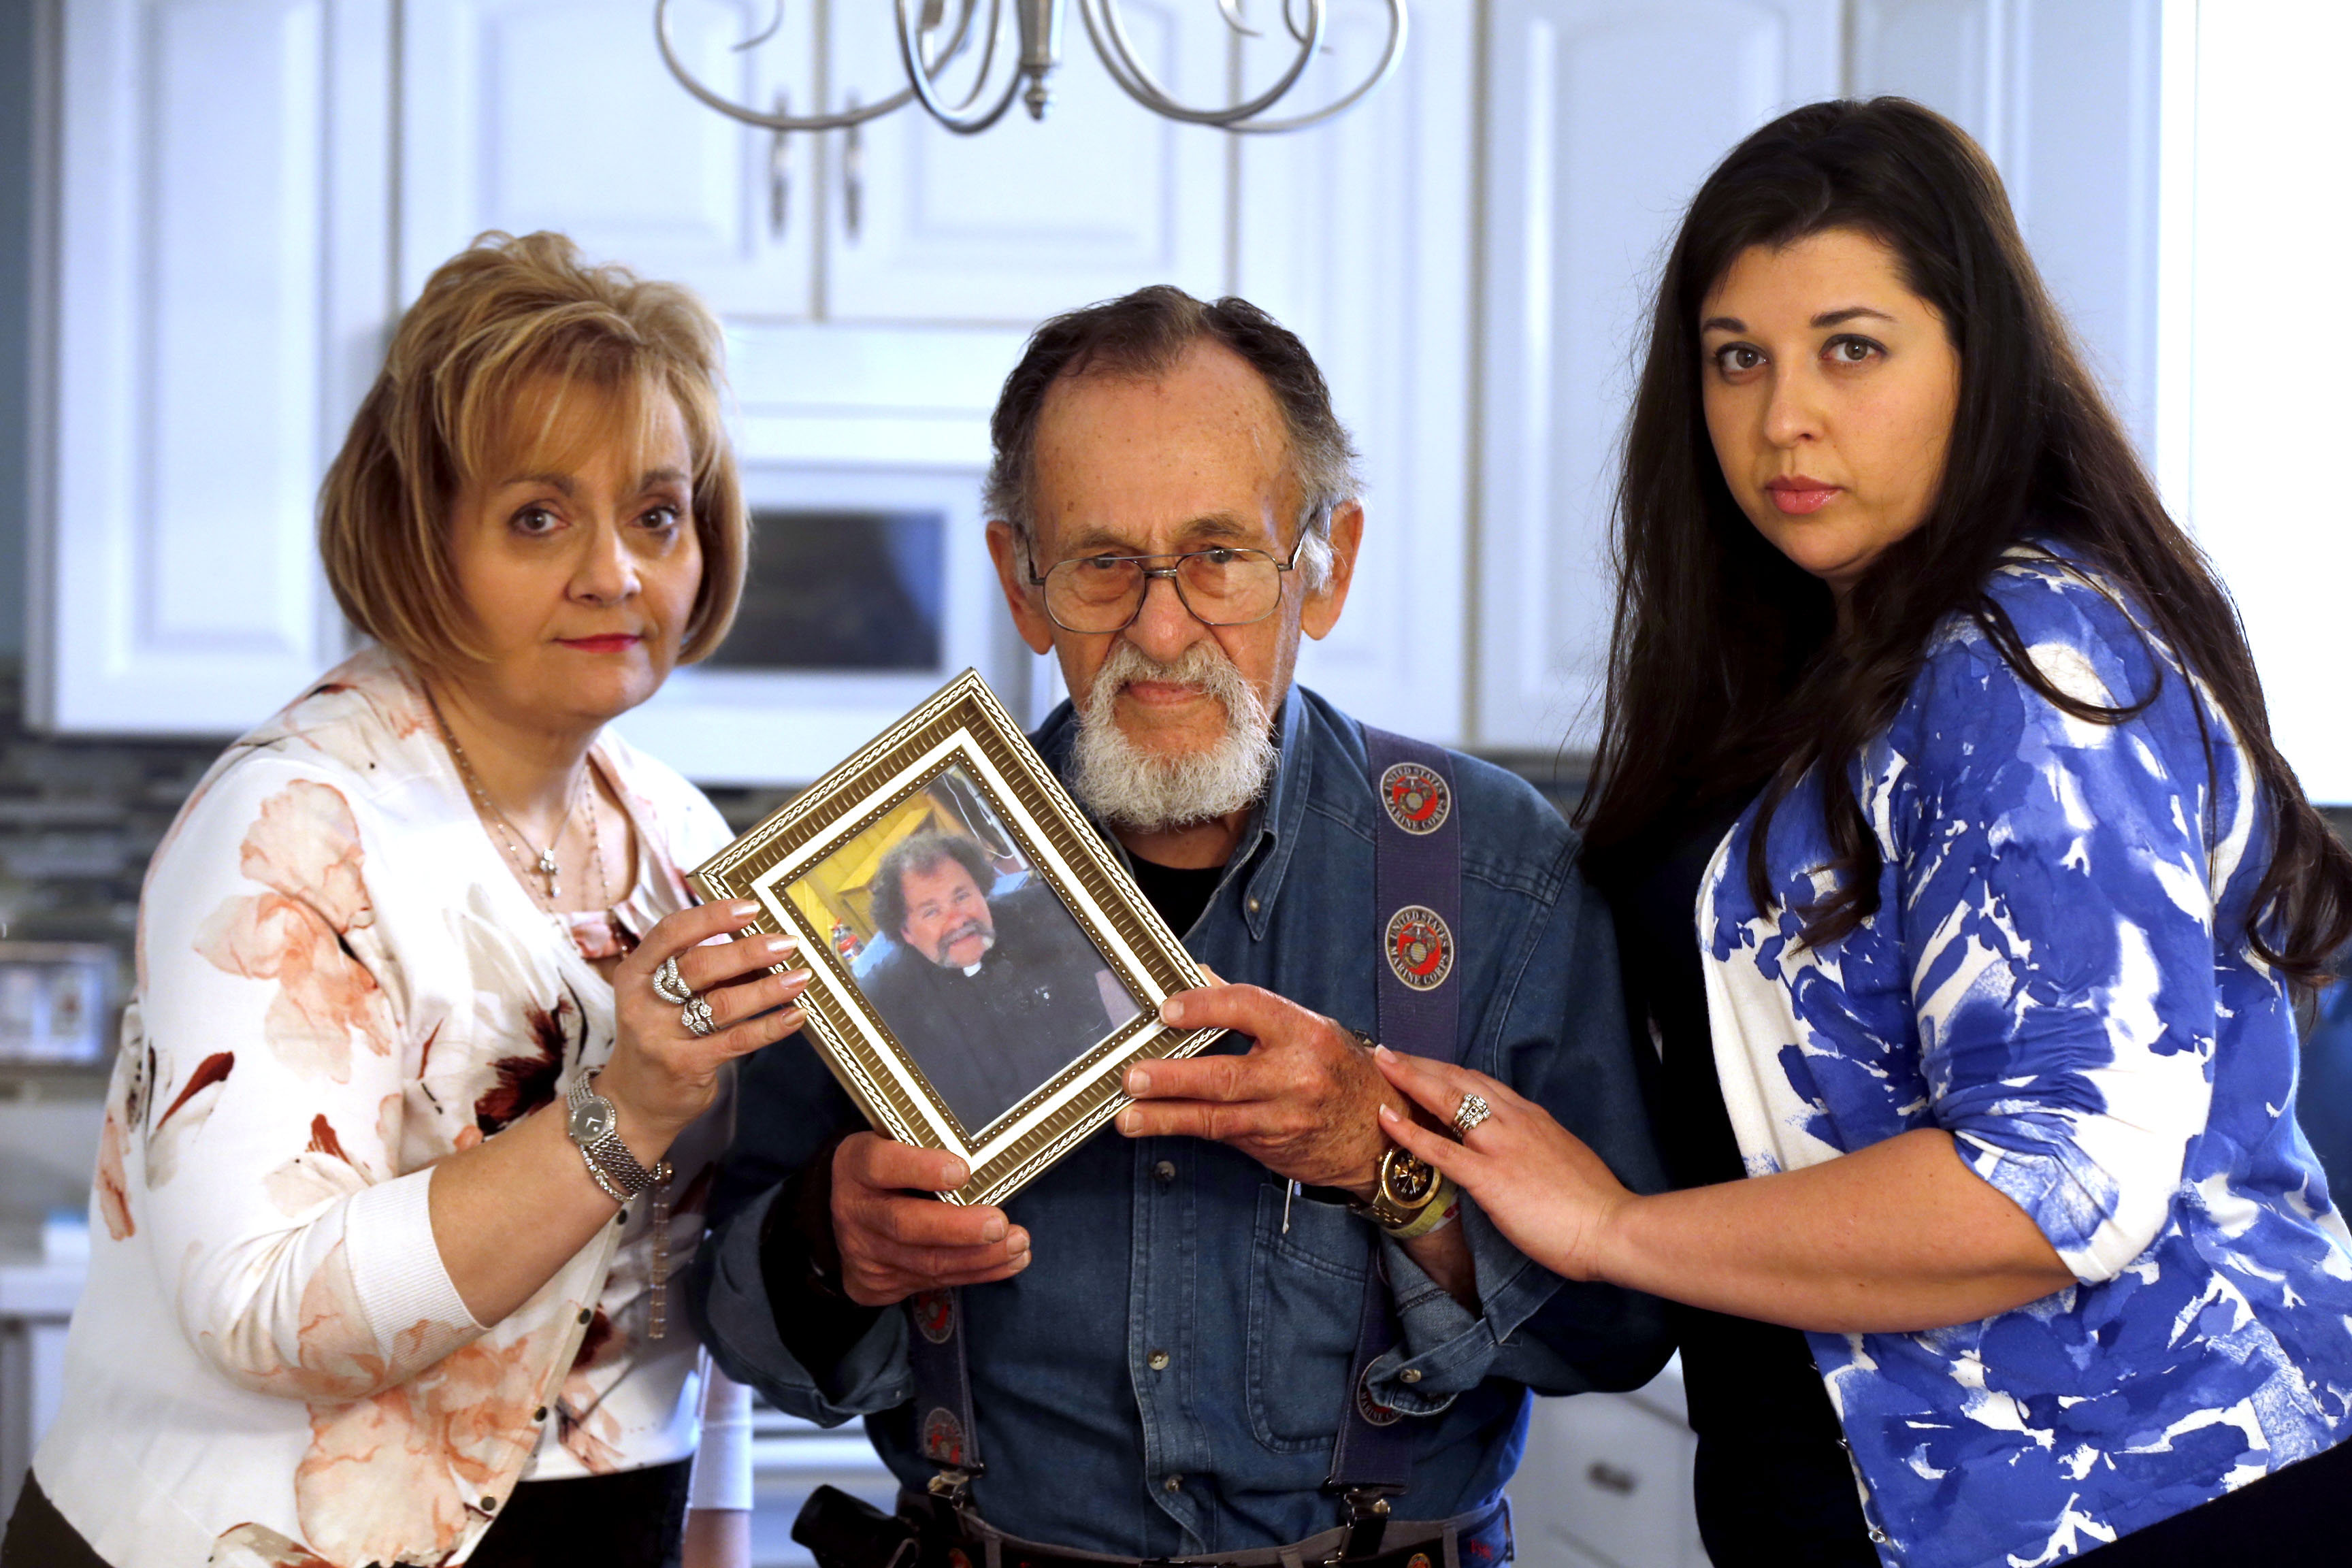 Holding a photo of Father Joe, from left, Susan M. Moreno, Joe Moreno Sr., and niece Christina Wild.  This was in Kenmore on Saturday, March 25, 2017.  (Robert Kirkham/Buffalo News)